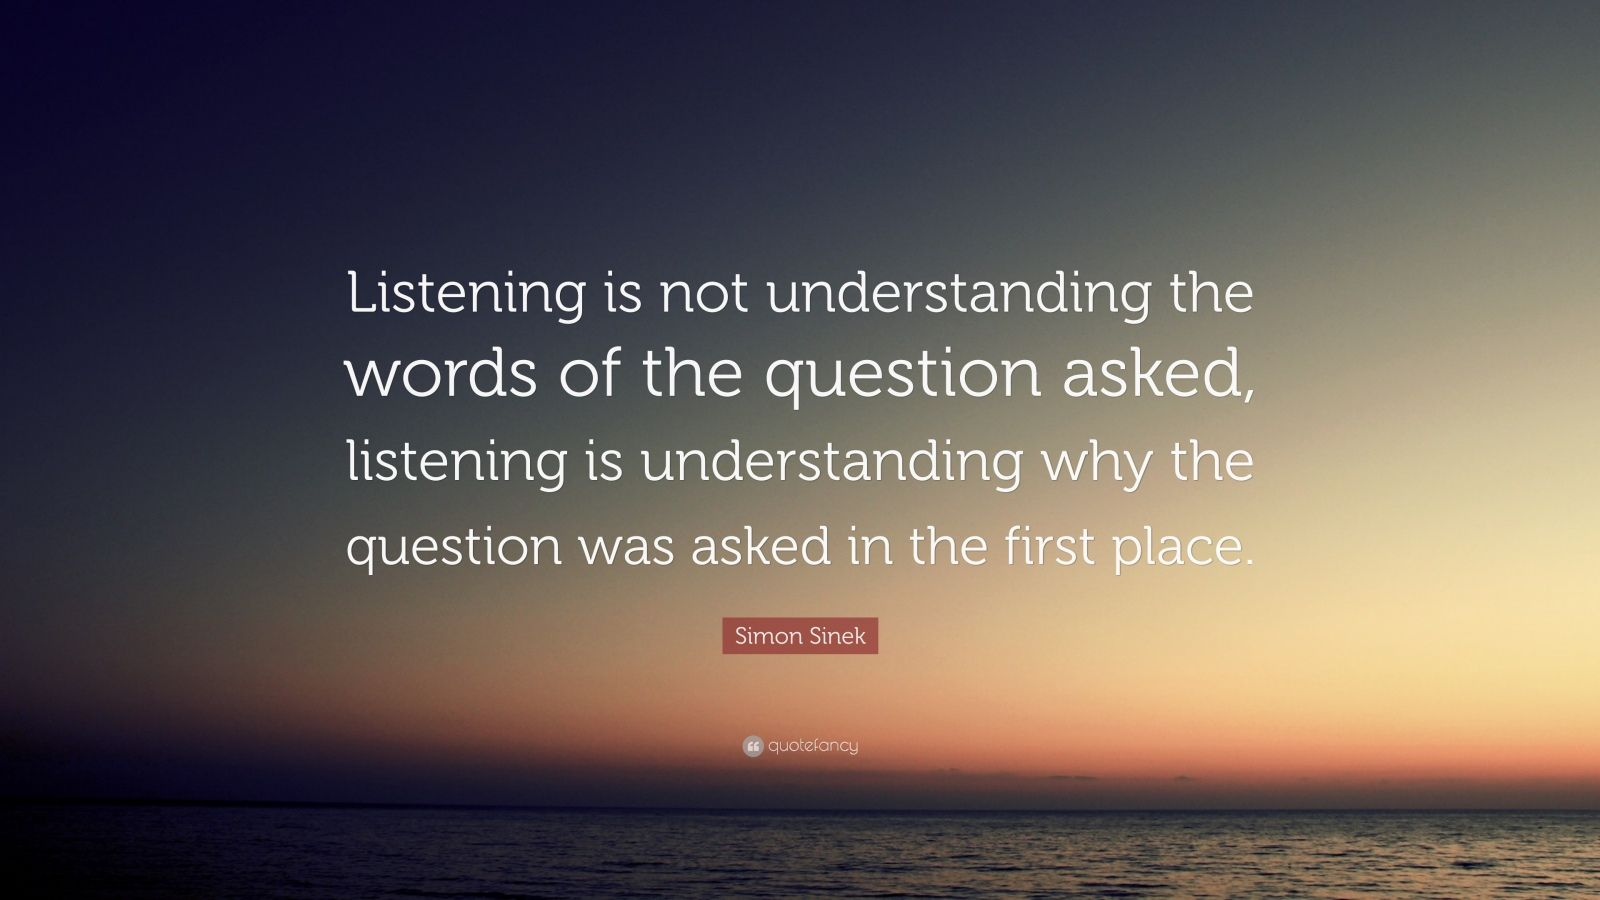 "Quotes About Listening: ""Listening is not understanding the words of the question asked, listening is understanding why the question was asked in the first place."" — Simon Sinek"